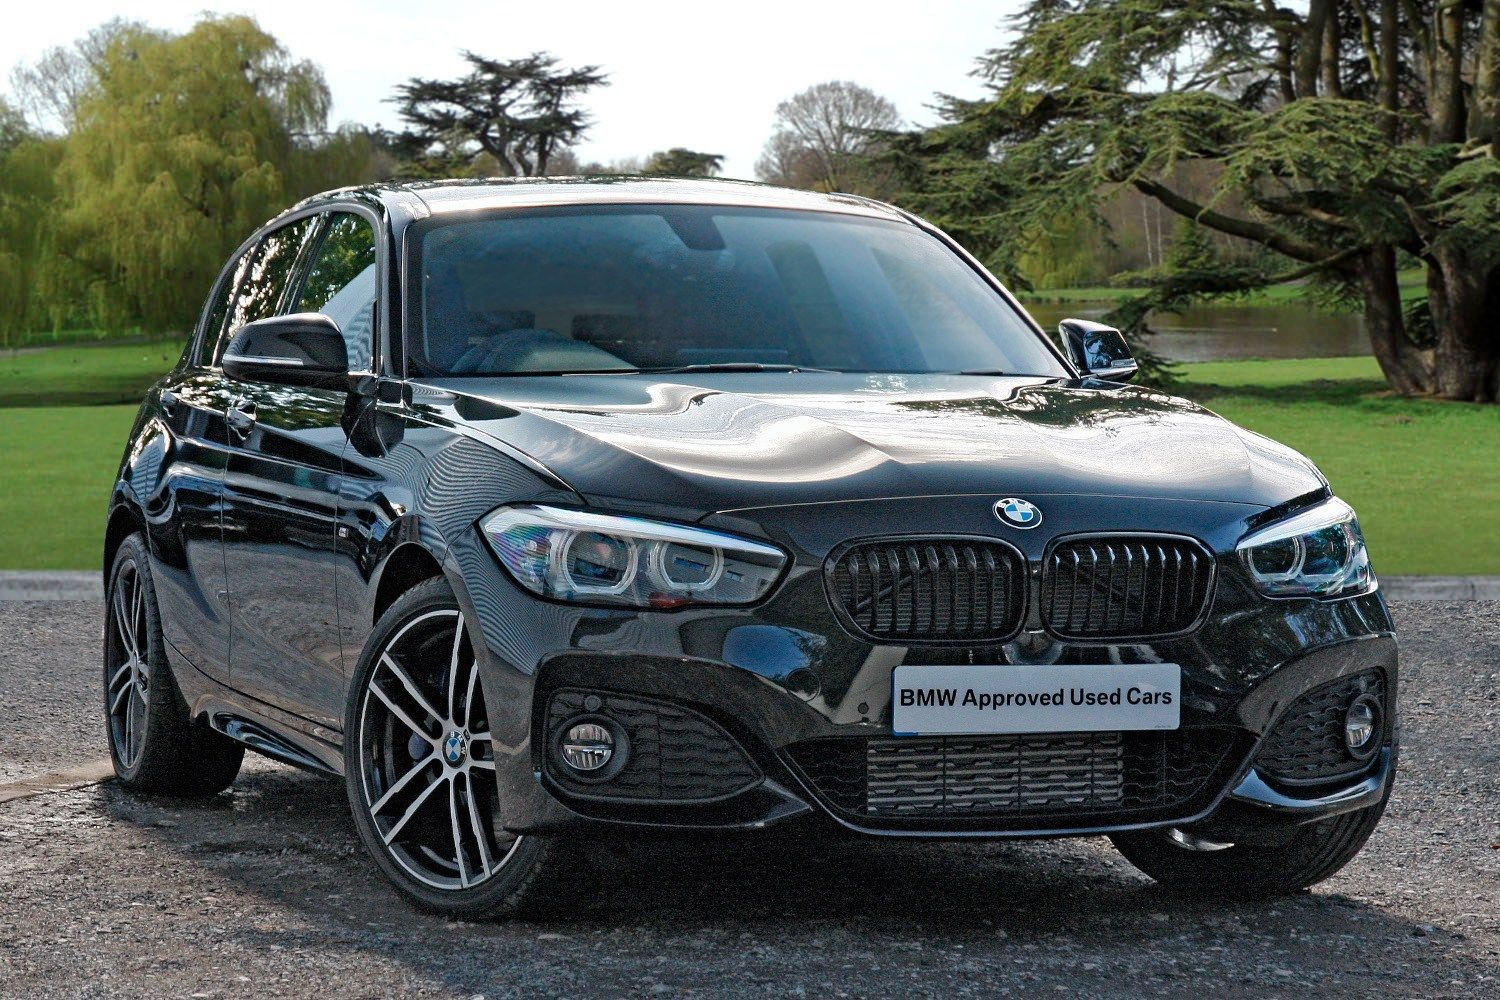 BMW 1 Series 120d xDrive M Sport Shadow Edition 5door 2.0 Leather